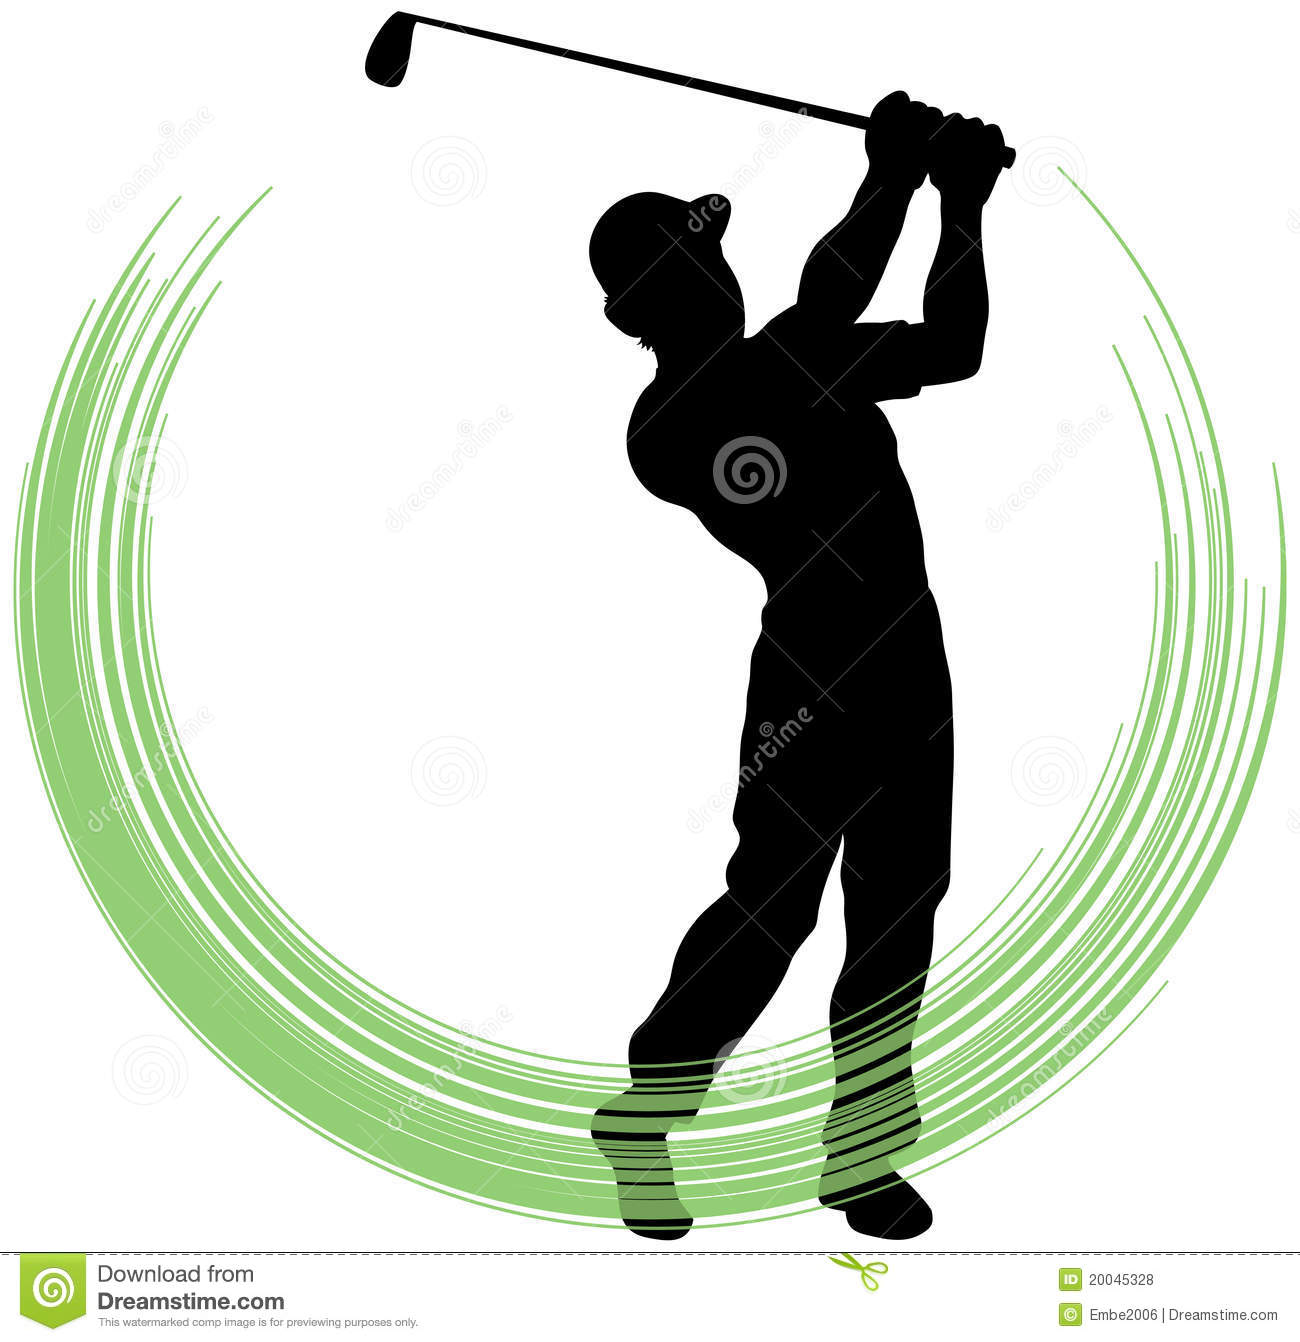 Golf Swing Royalty Free Stock Photos - Image: 20045328 Golf Ball On Tee Clipart